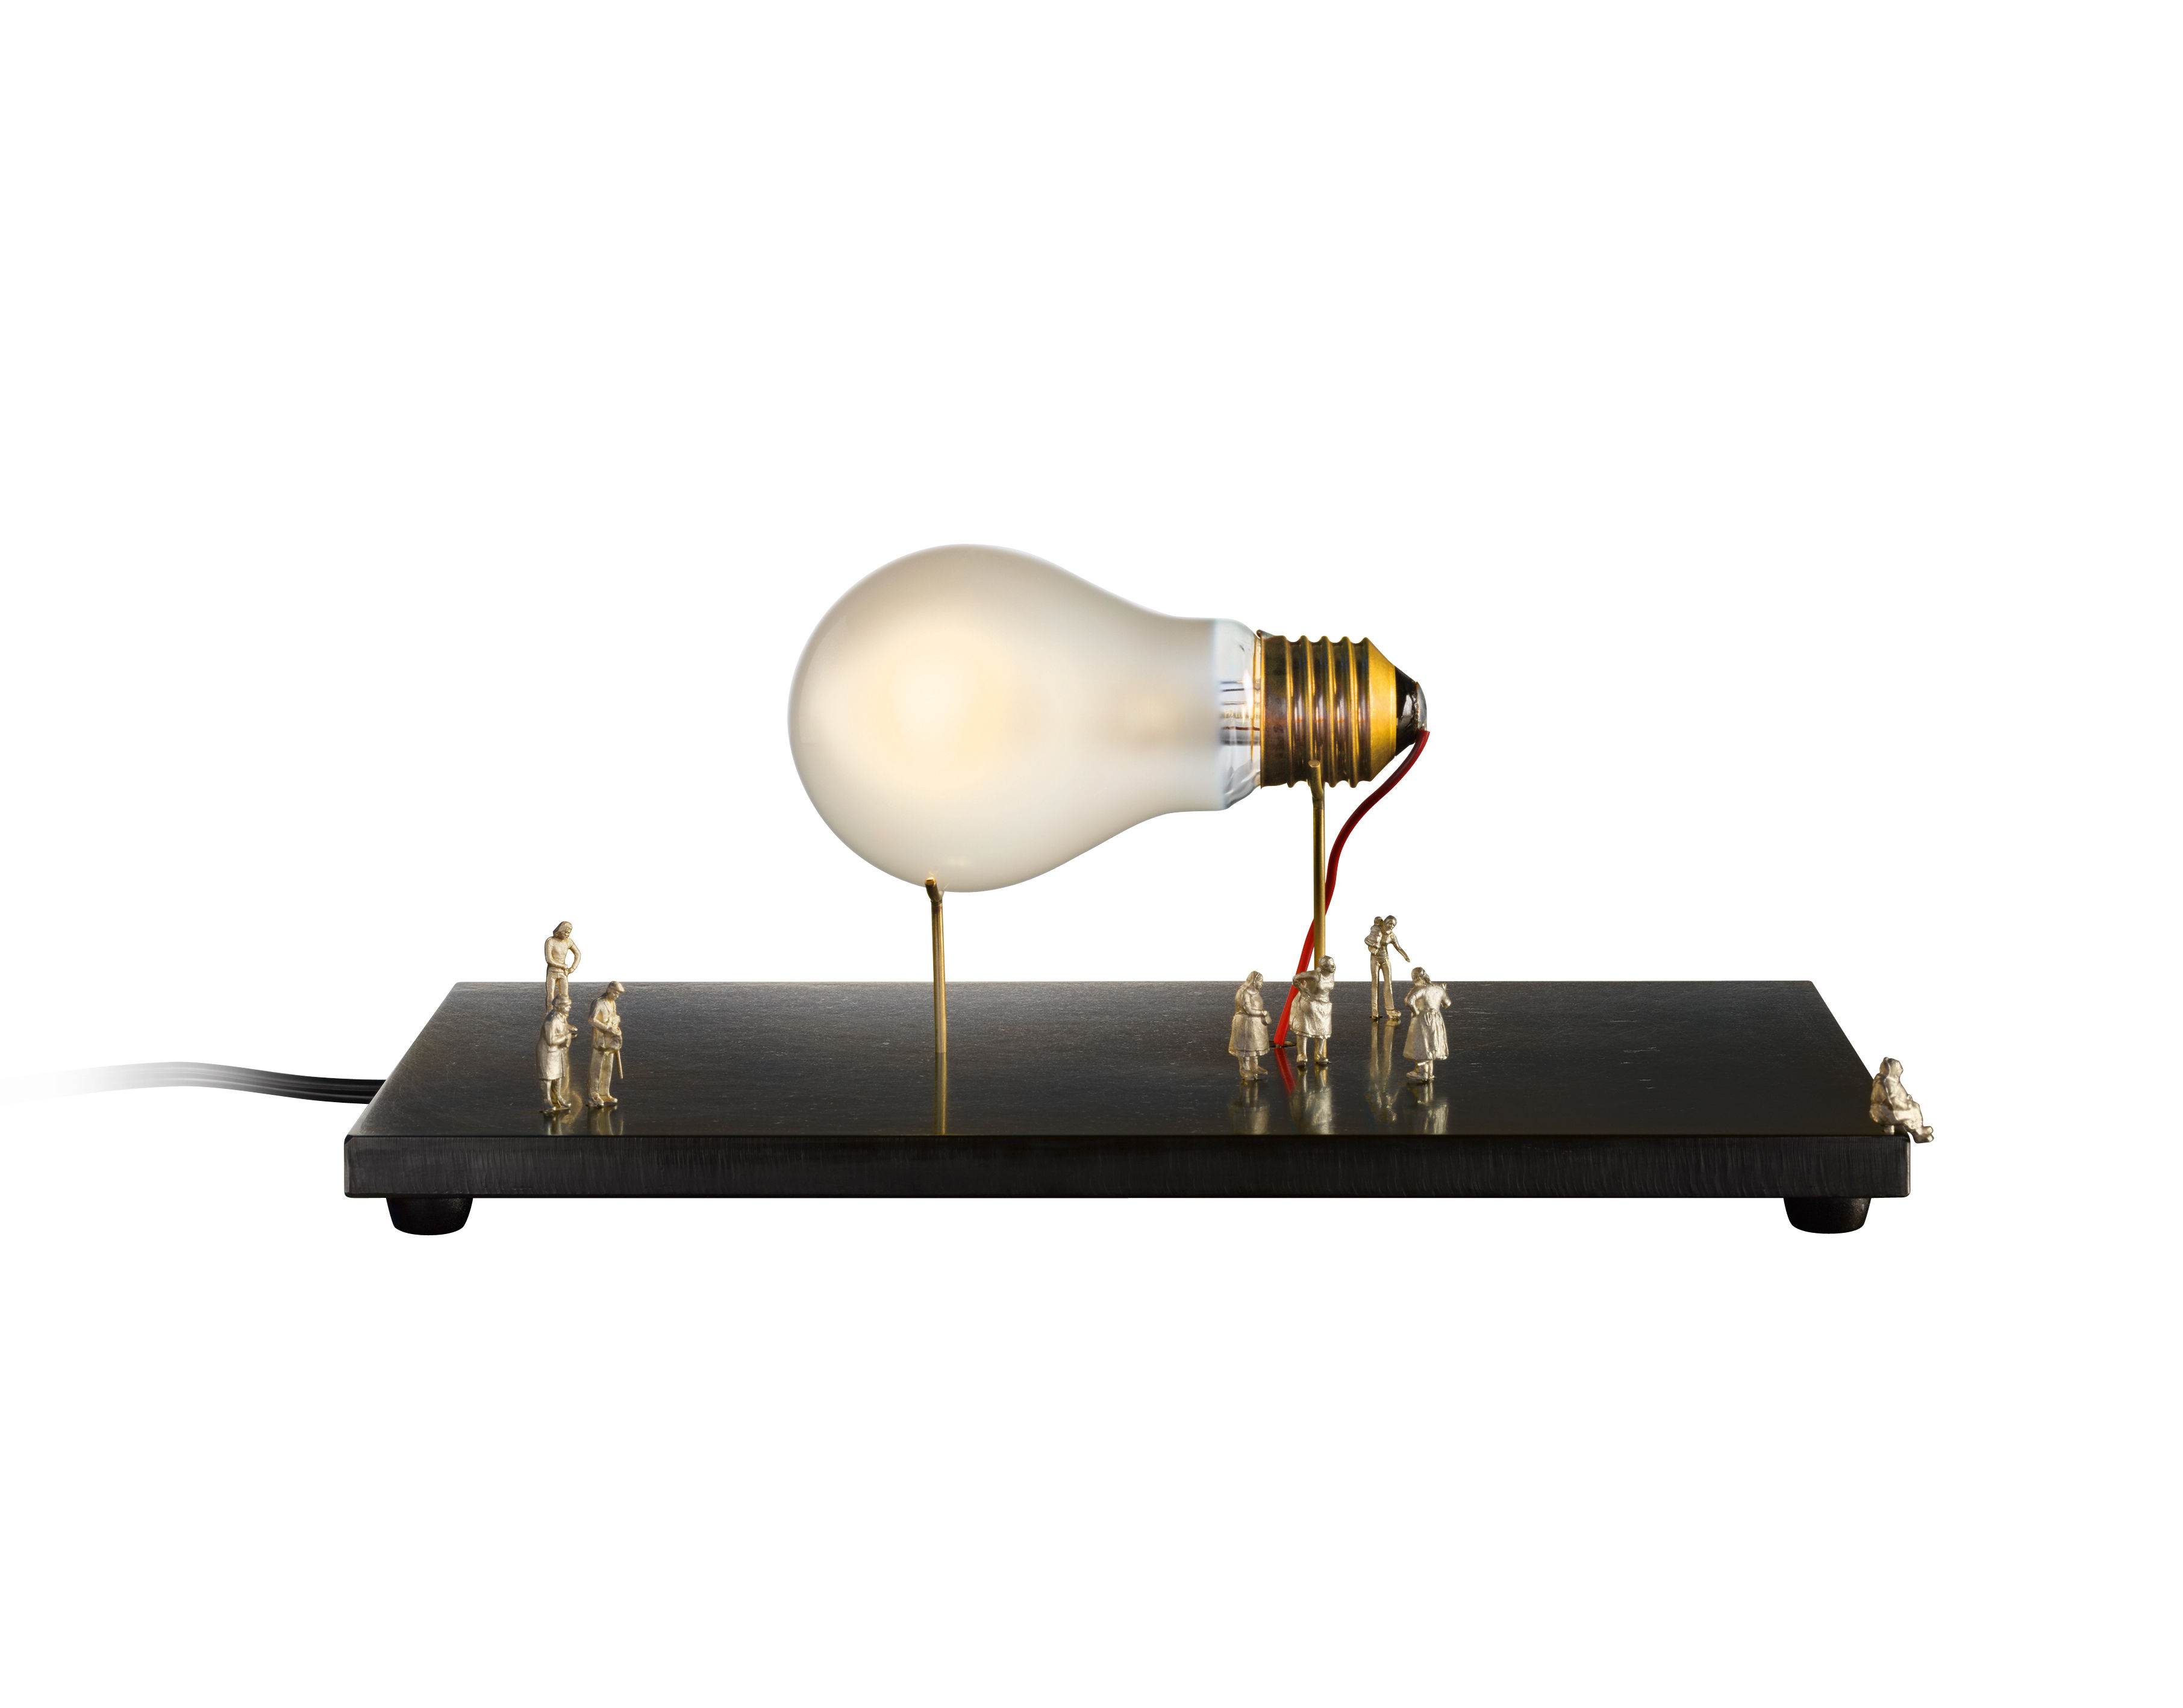 Lighting - Table Lamps - I Ricchi Poveri - Monument for a bulb Table lamp by Ingo Maurer - Black - Metal